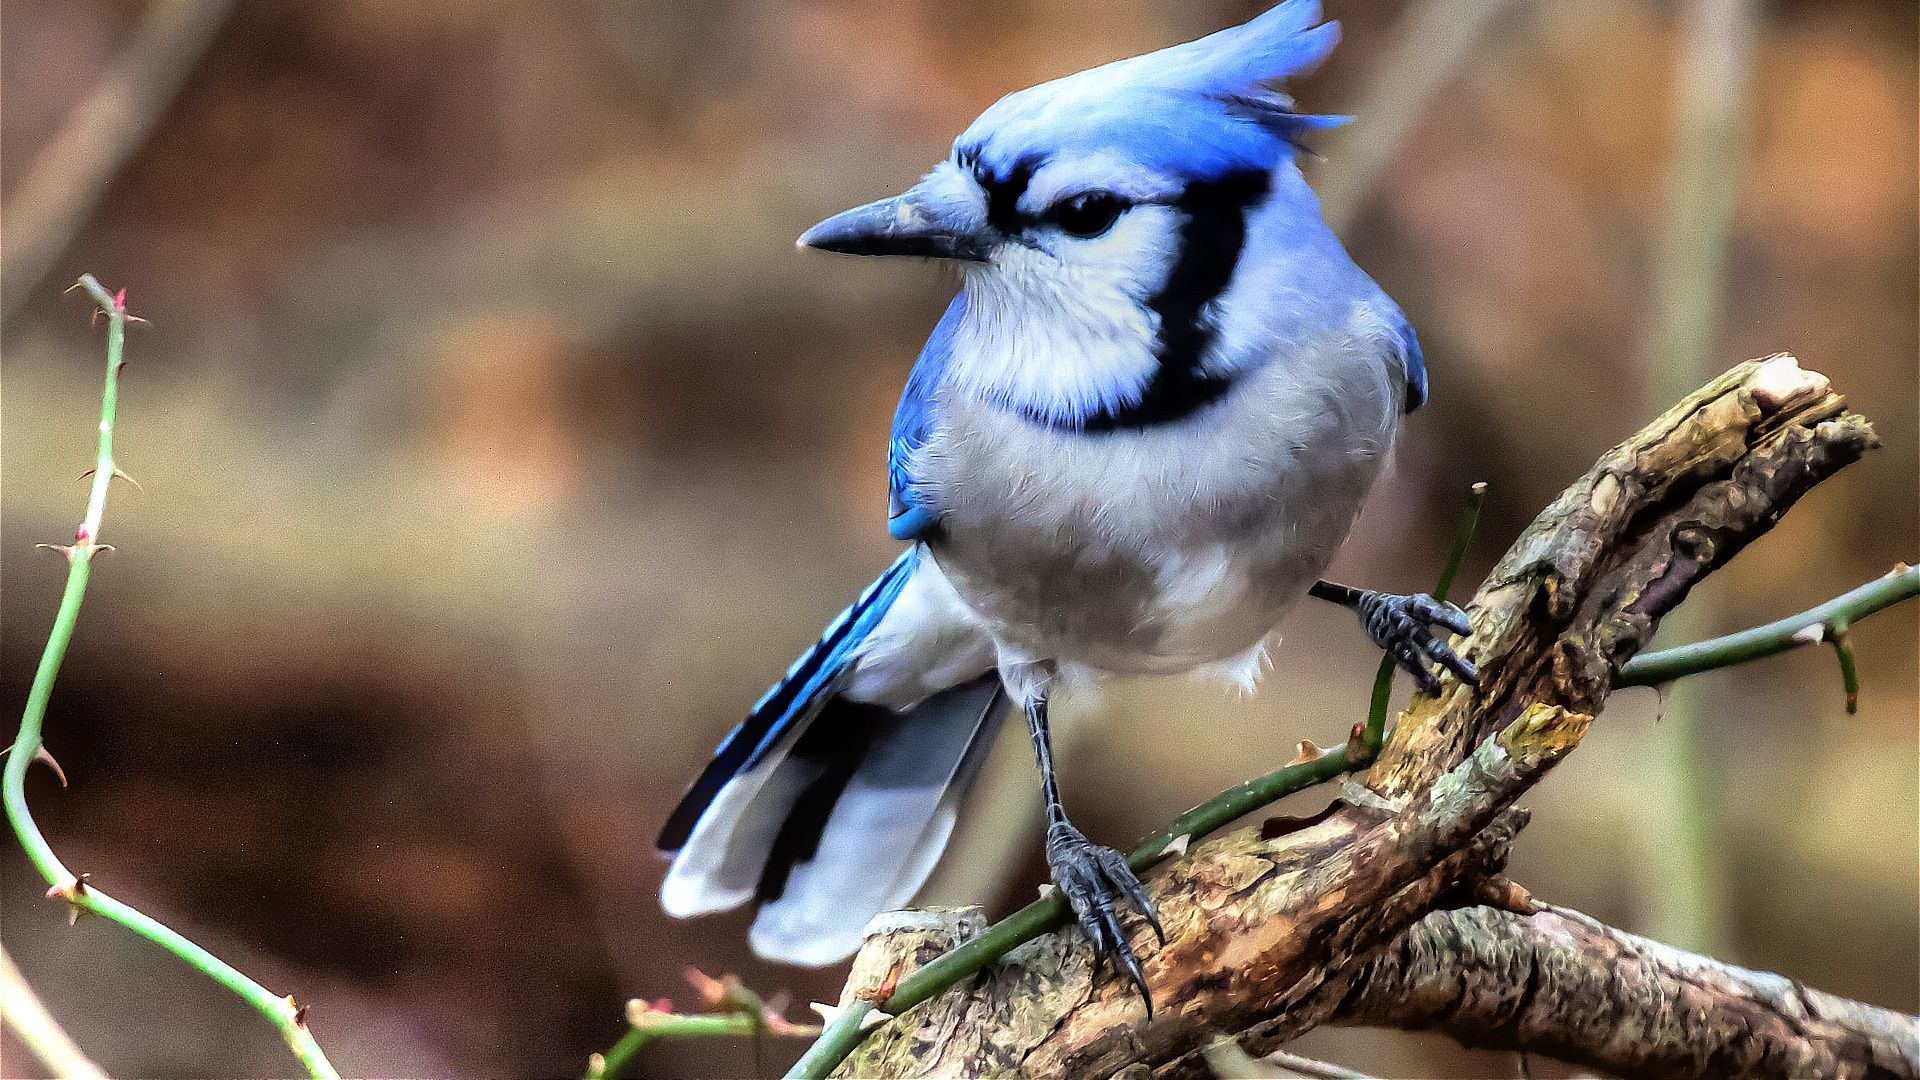 Blue Jays download free wallpapers for pc in hd